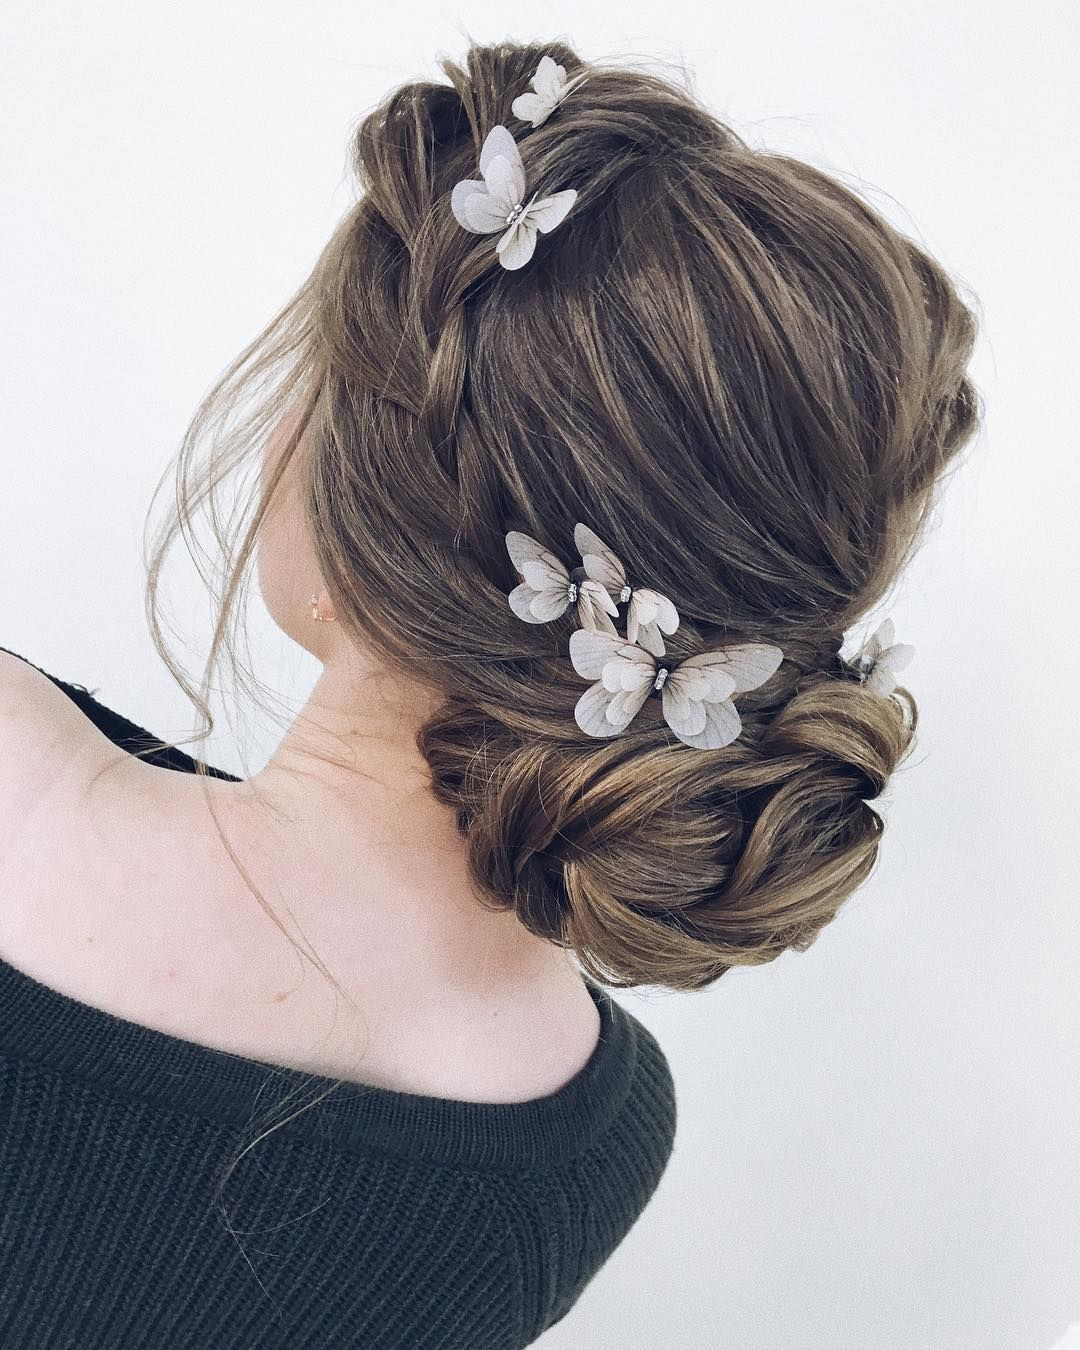 Braided Updo Messy Updo Hairstyle Swept Back Bridal Hairstyle